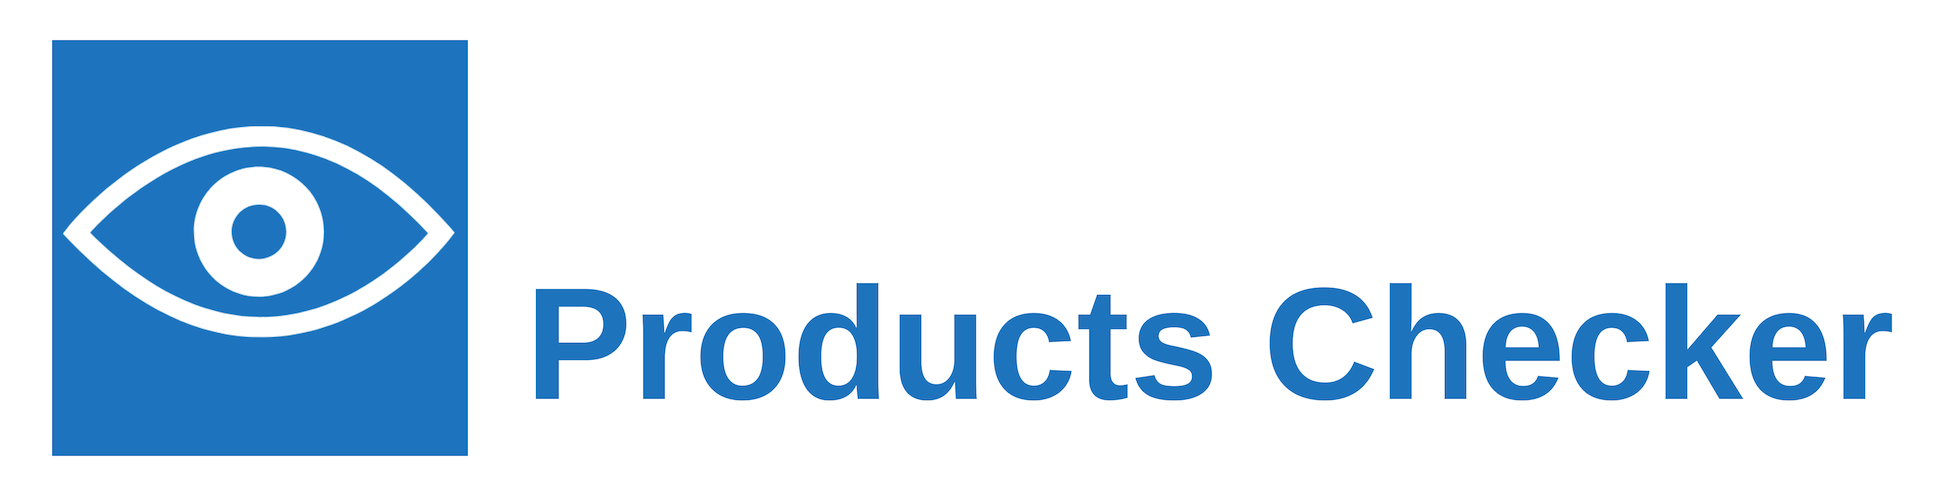 Products Checker